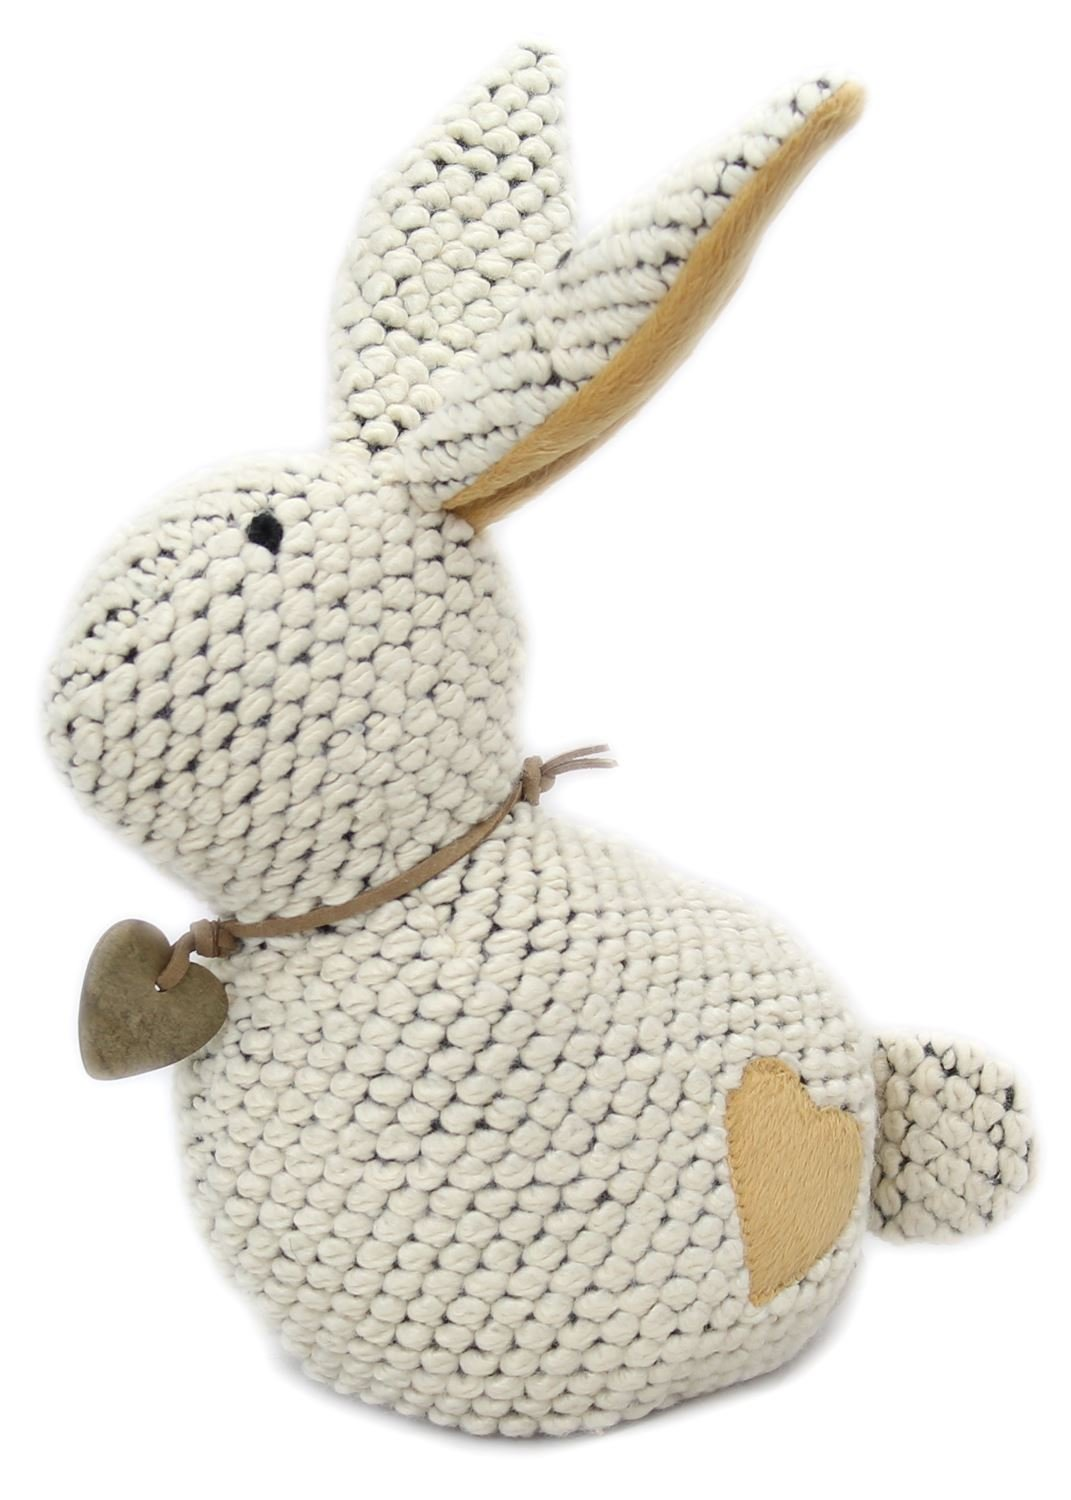 23cm Take Me Home Chunky Knitted Decorative Rabbit Doorstop ~ Cream Carousel Home